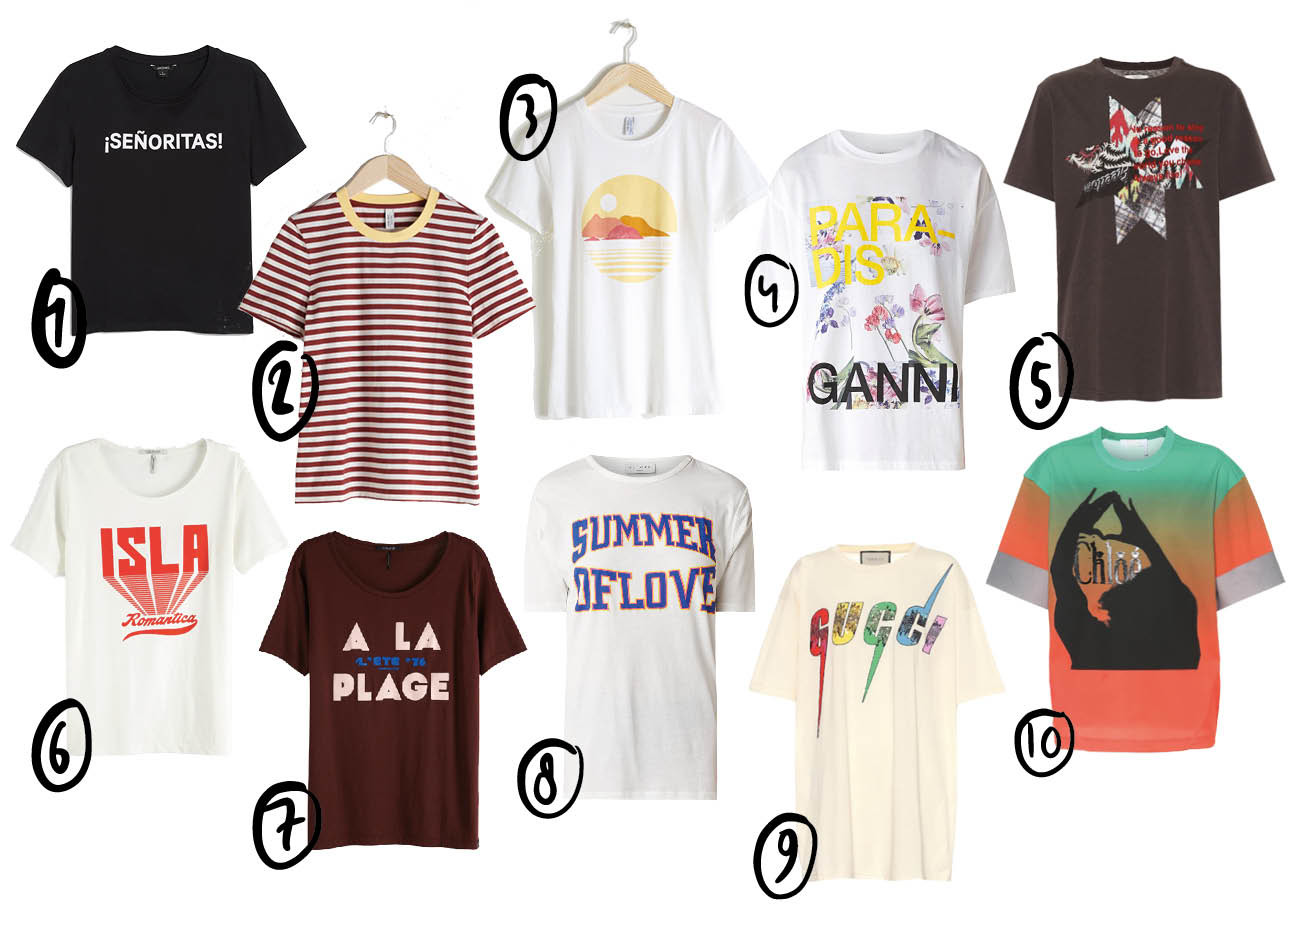 tshirts shopping Ganni Gucci &Other Stories fashion trends